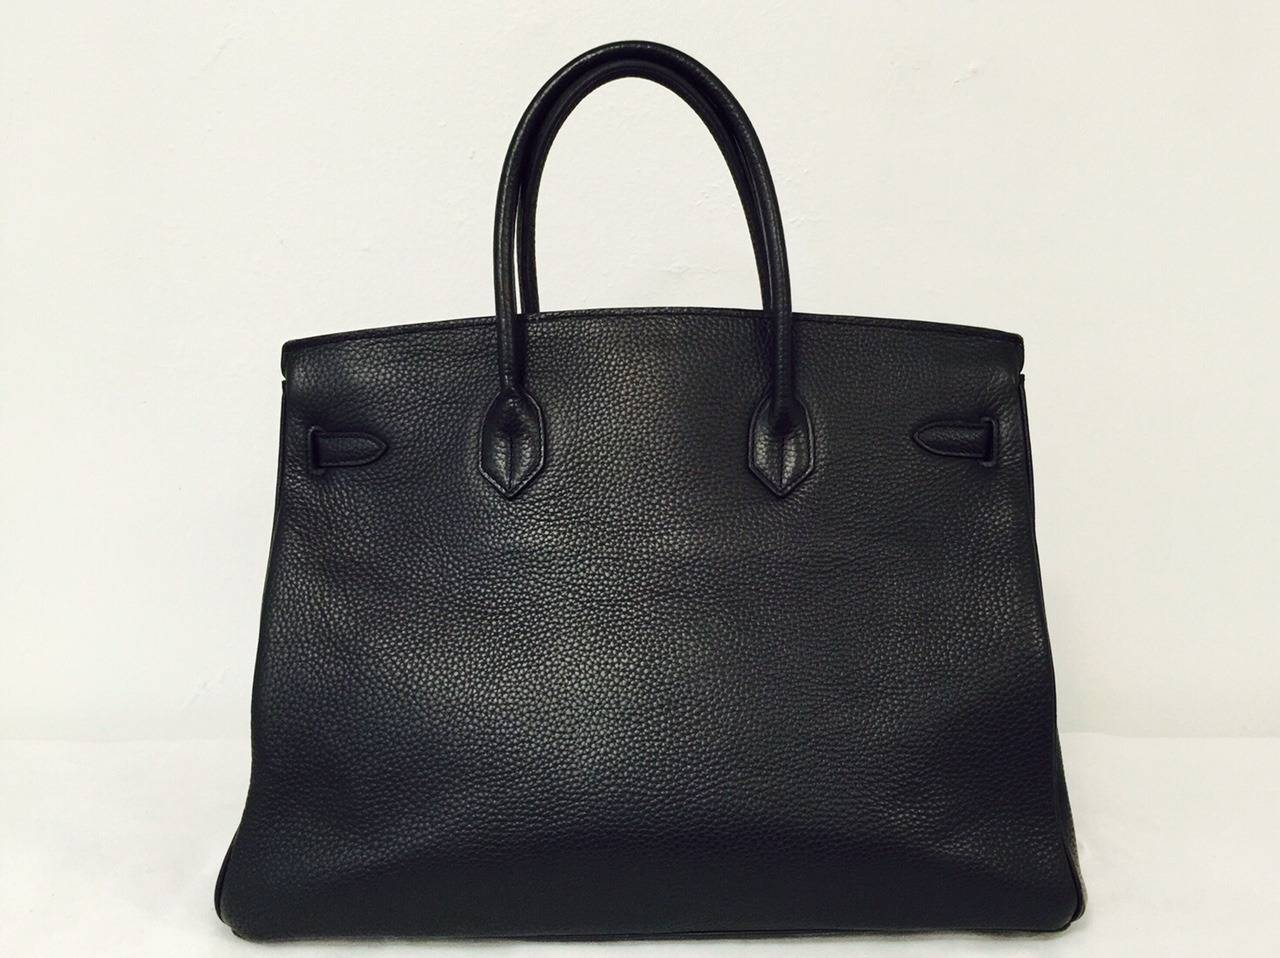 2010 Hermès Black Birkin Togo 40 With Gold Hardware 2